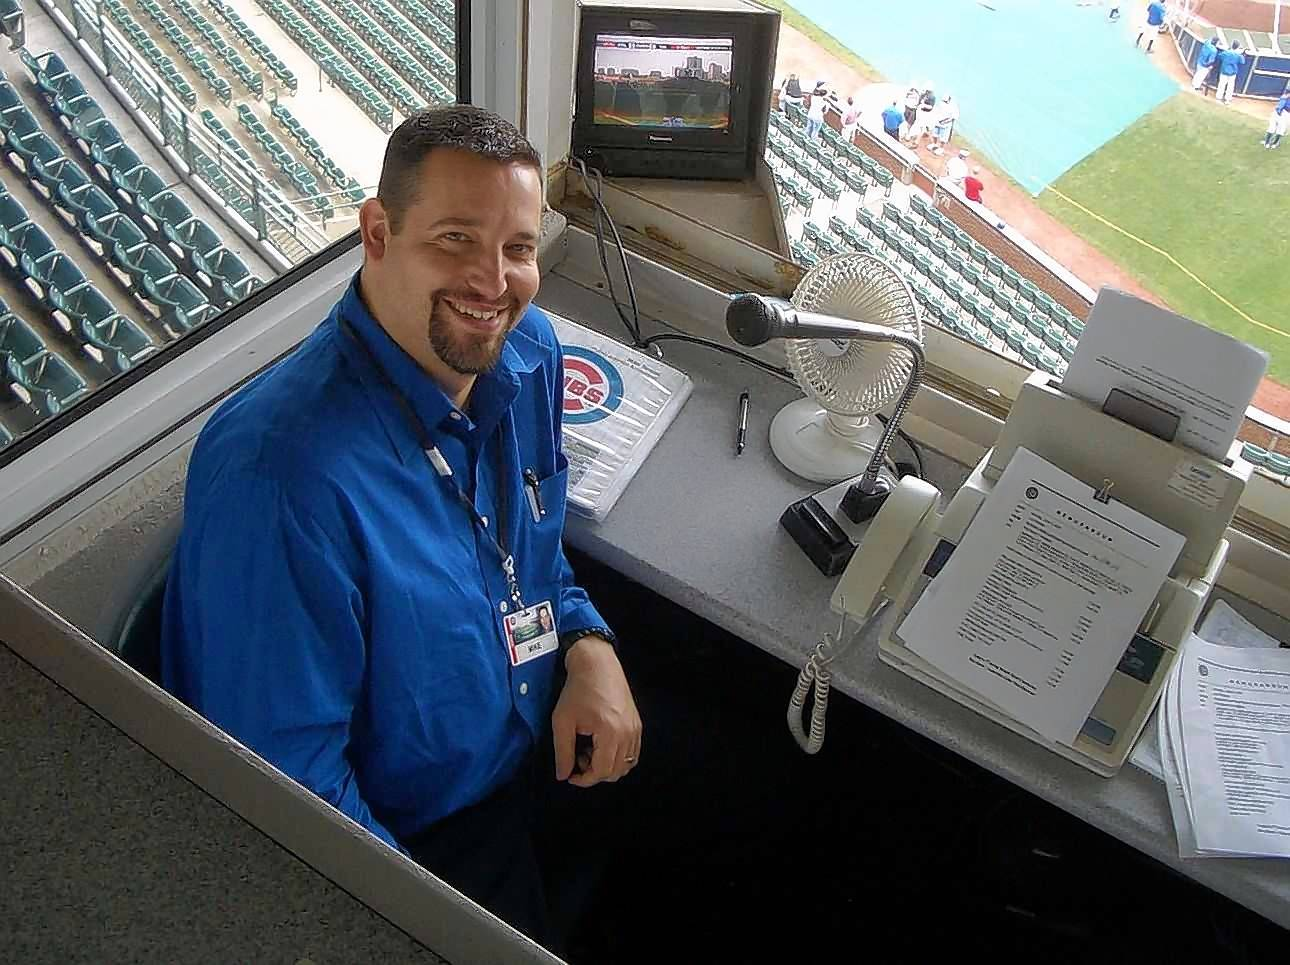 Mike Terson knows pro sports from his years as the public address announcer for weekend Cubs games at Wrigley Field and the Chicago Wolves hockey games. Terson says it's not right to treat youth sports the way we do professional sports.